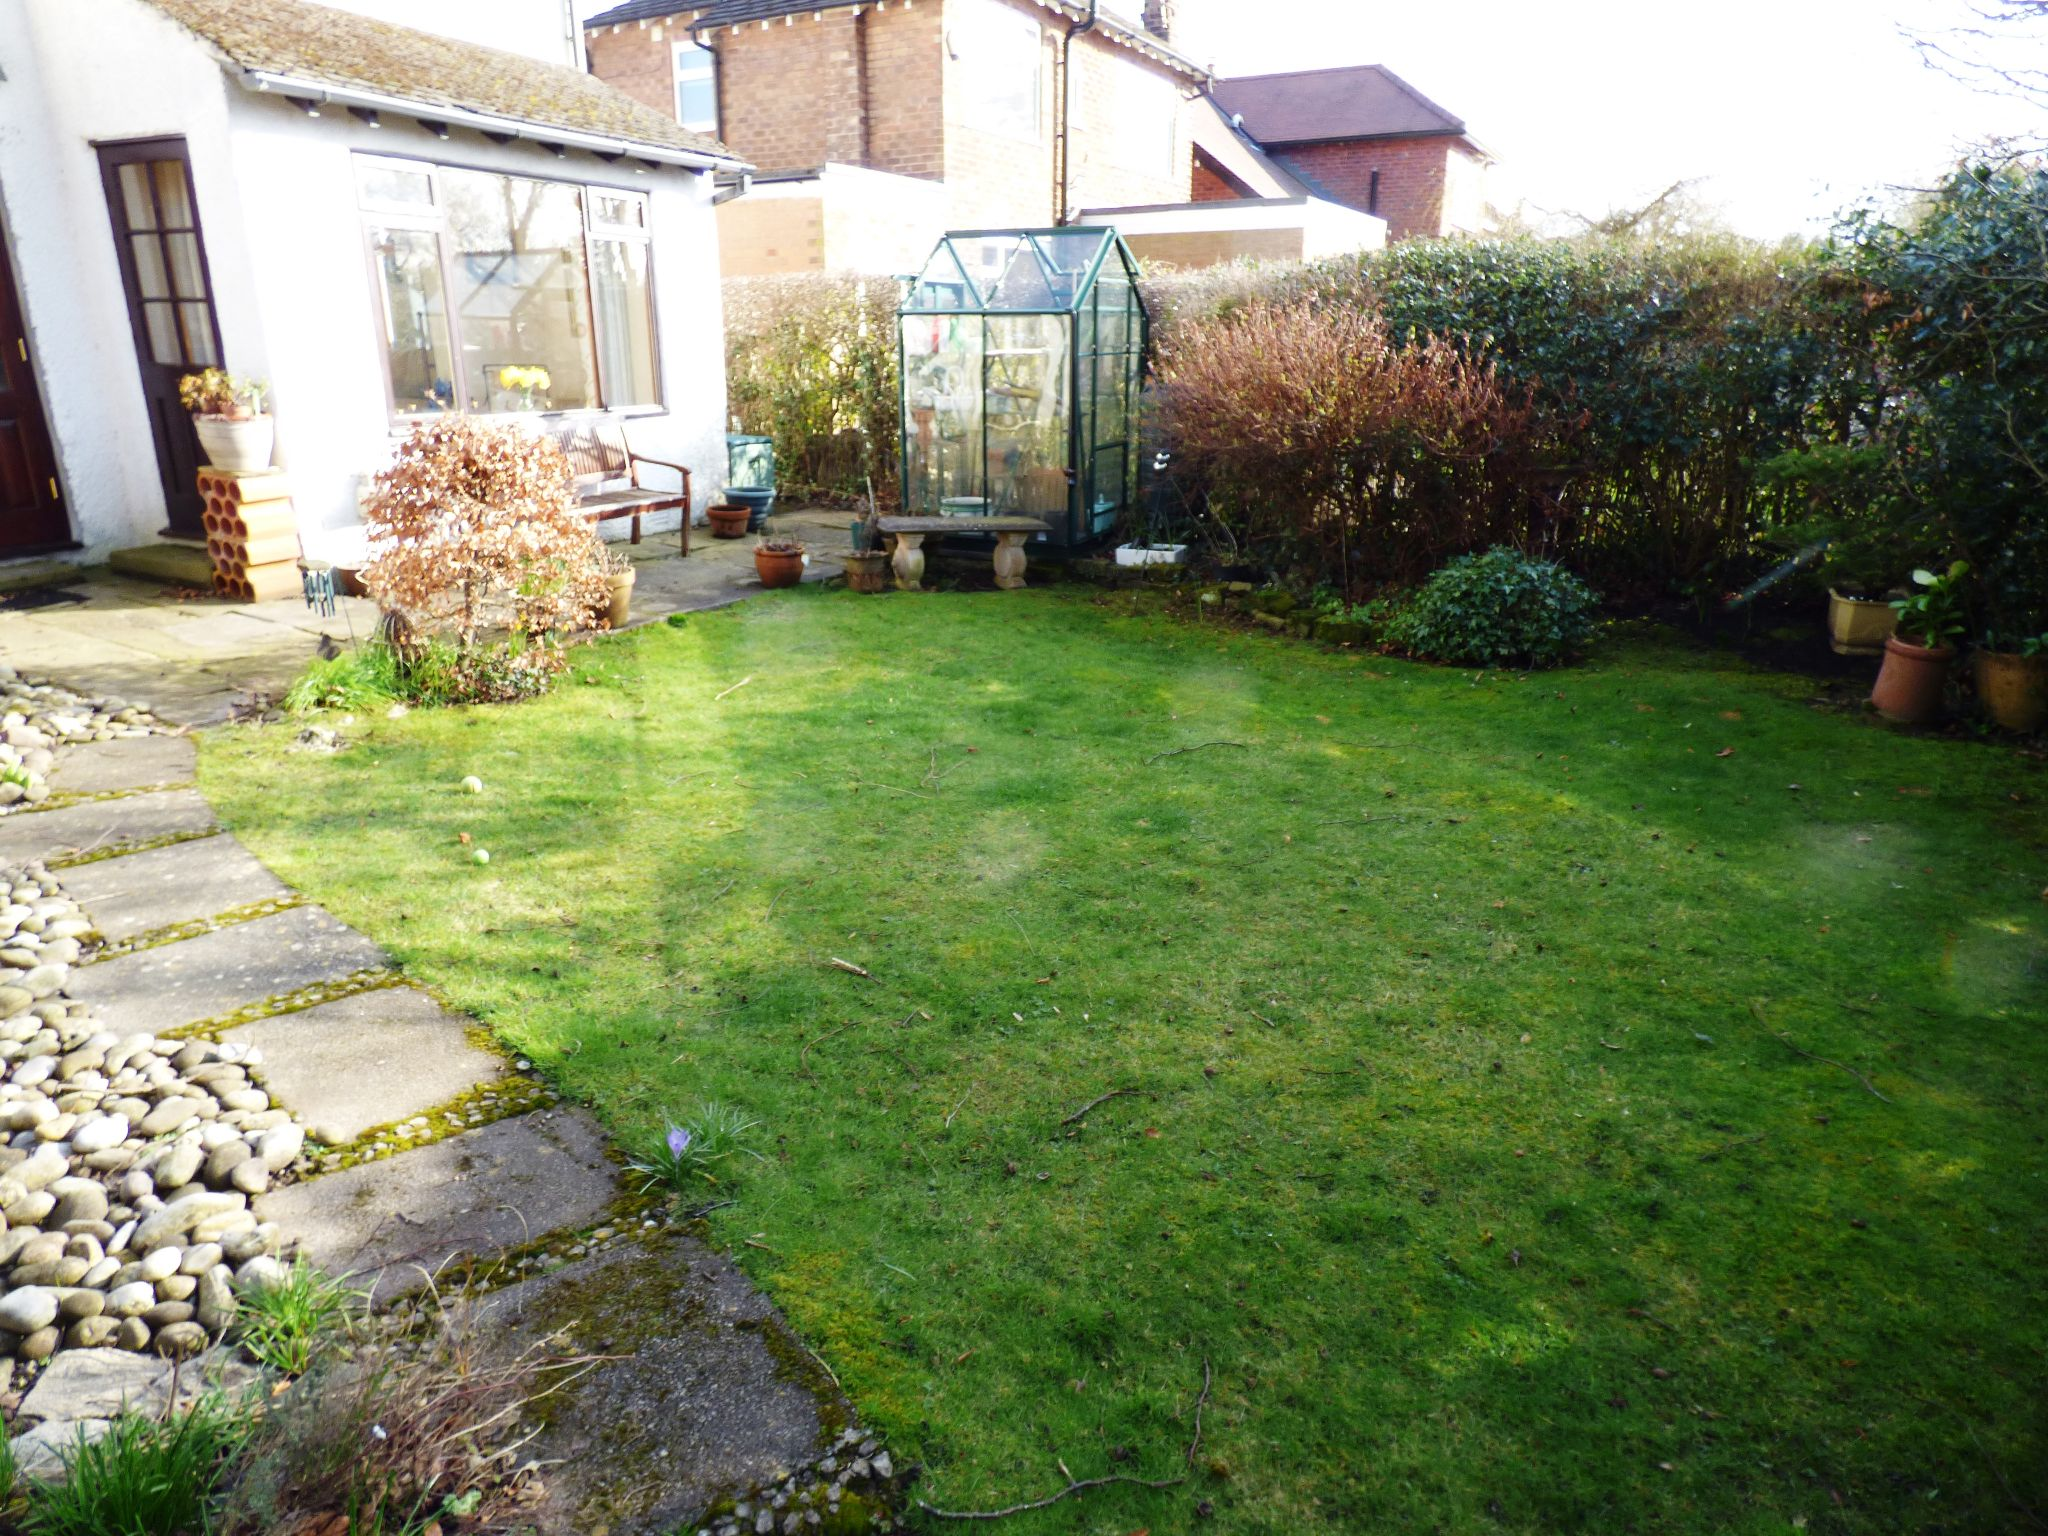 3 Bedroom Detached House For Sale - Rear Garden